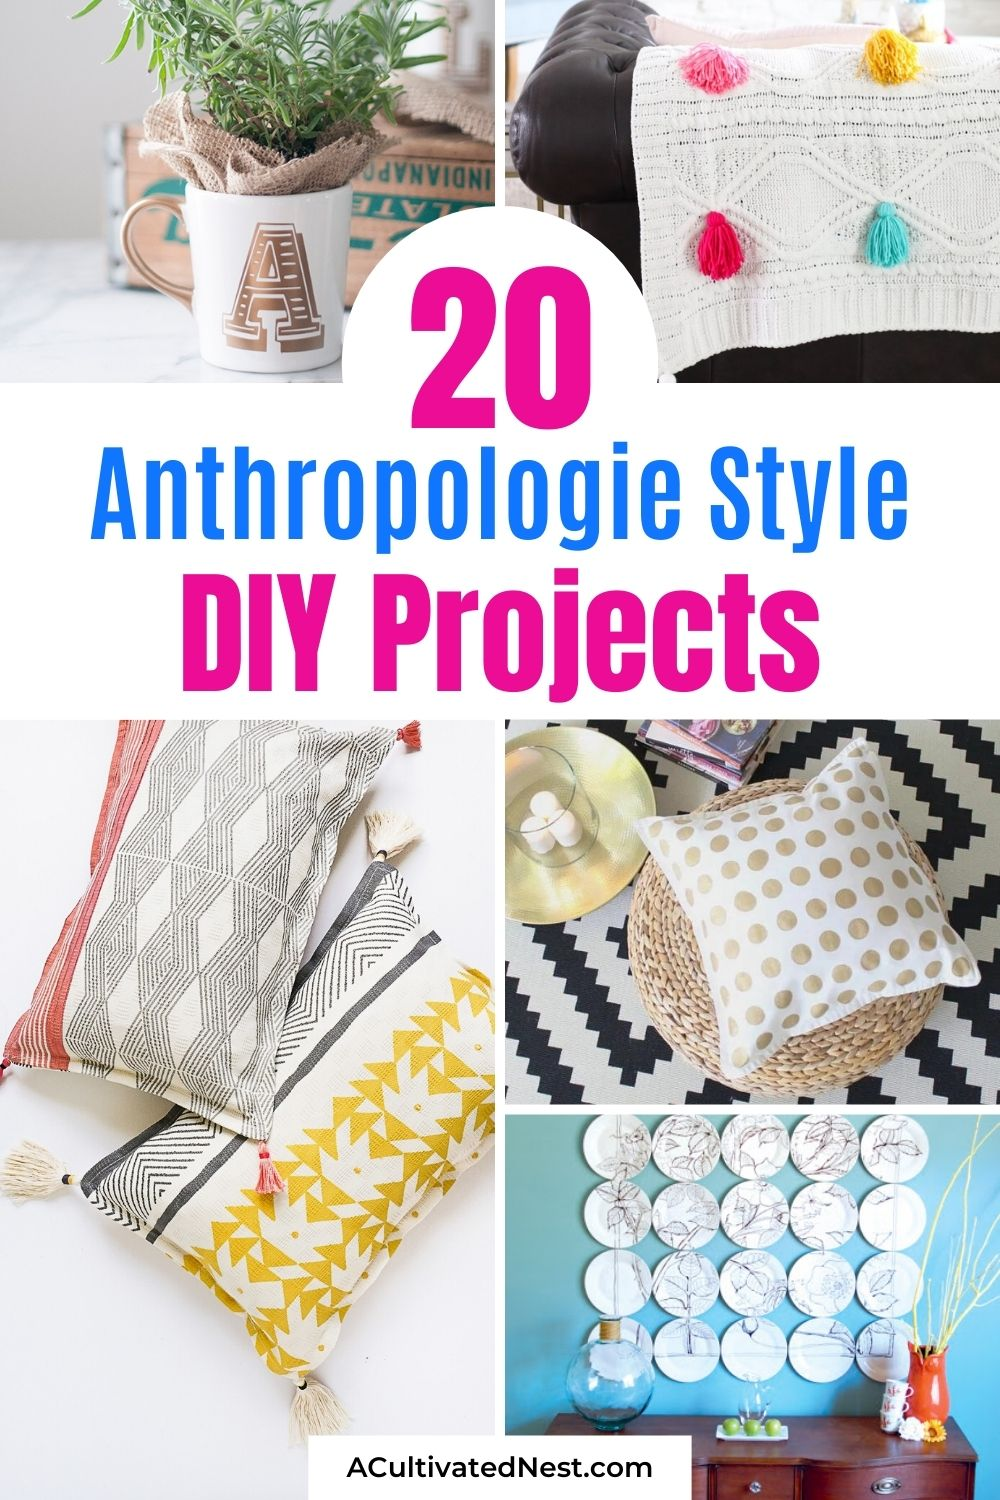 20 Charming Anthropologie Style DIY Projects- You can get the Anthropologie look for less with just some basic DIY skills! You have to check out these charming Anthropologie style DIY projects if you want to enjoy great looking décor without breaking your budget! | #crafts #diyProjects #AnthropologieKnockoffs #diyDecor #ACultivatedNest